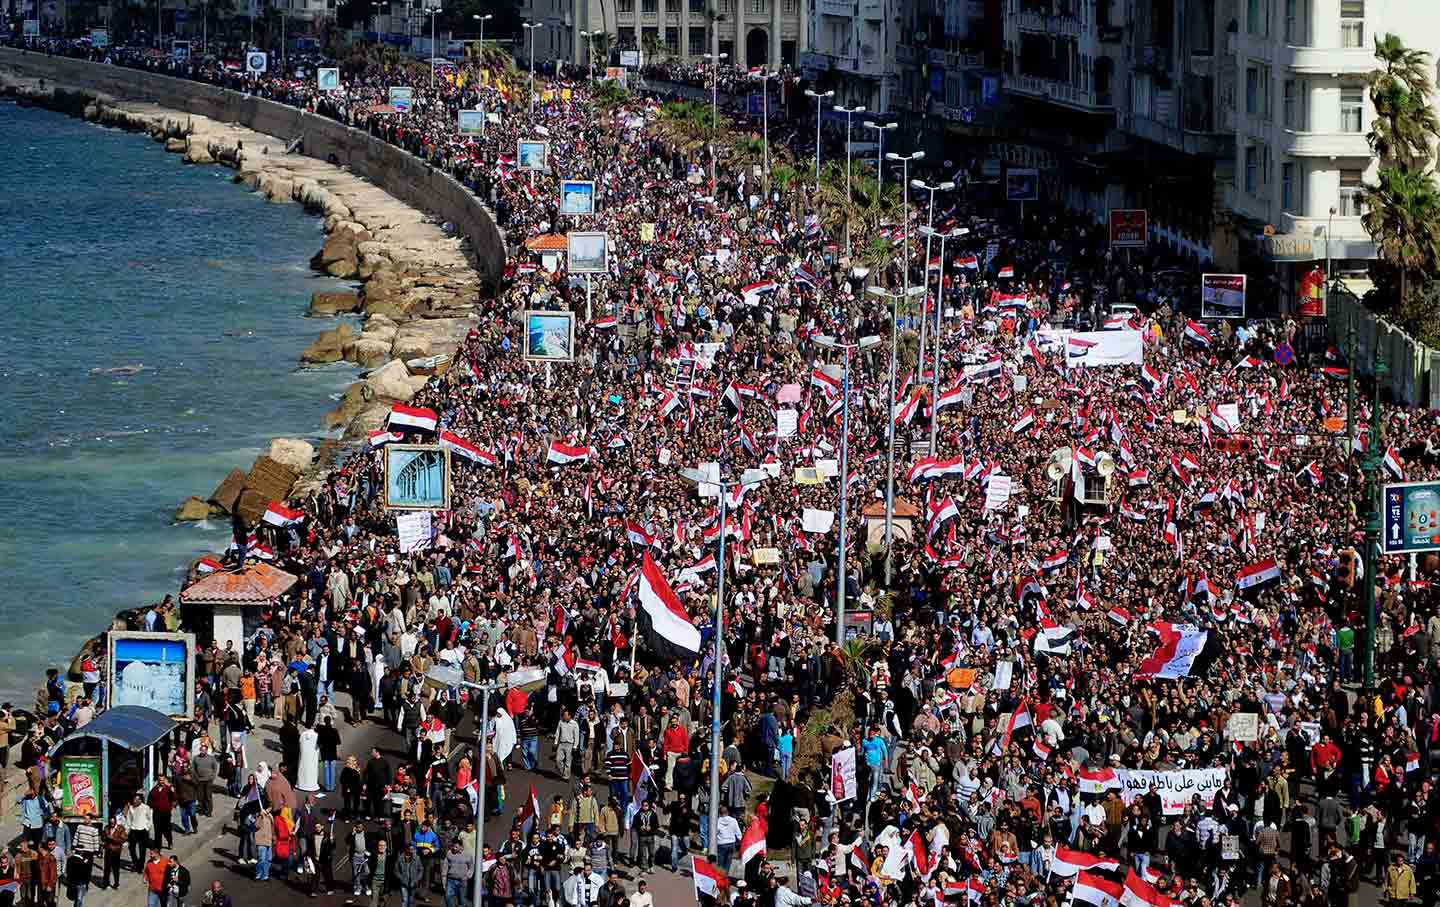 Alexandria during the 2011 uprising